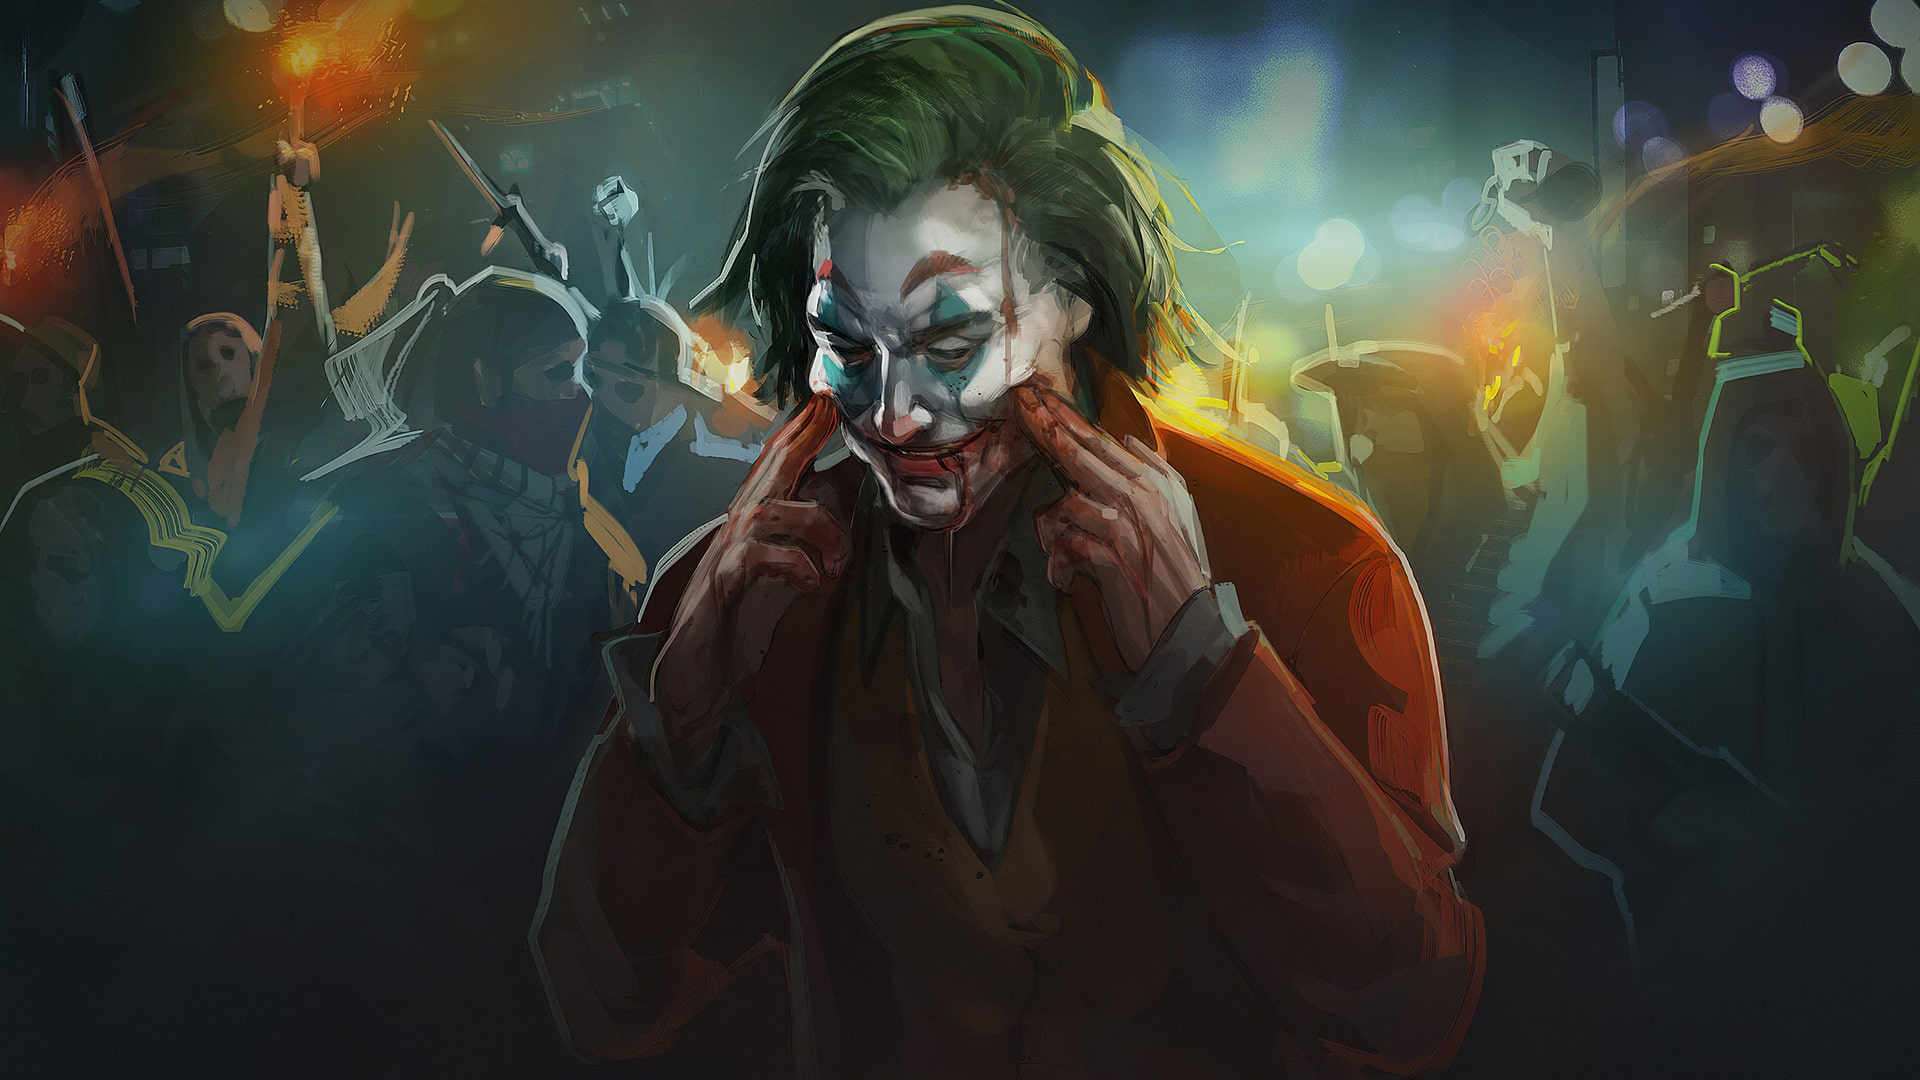 joker wallpaper, joker smile wallpaper, wallpaper, hd wallppaer